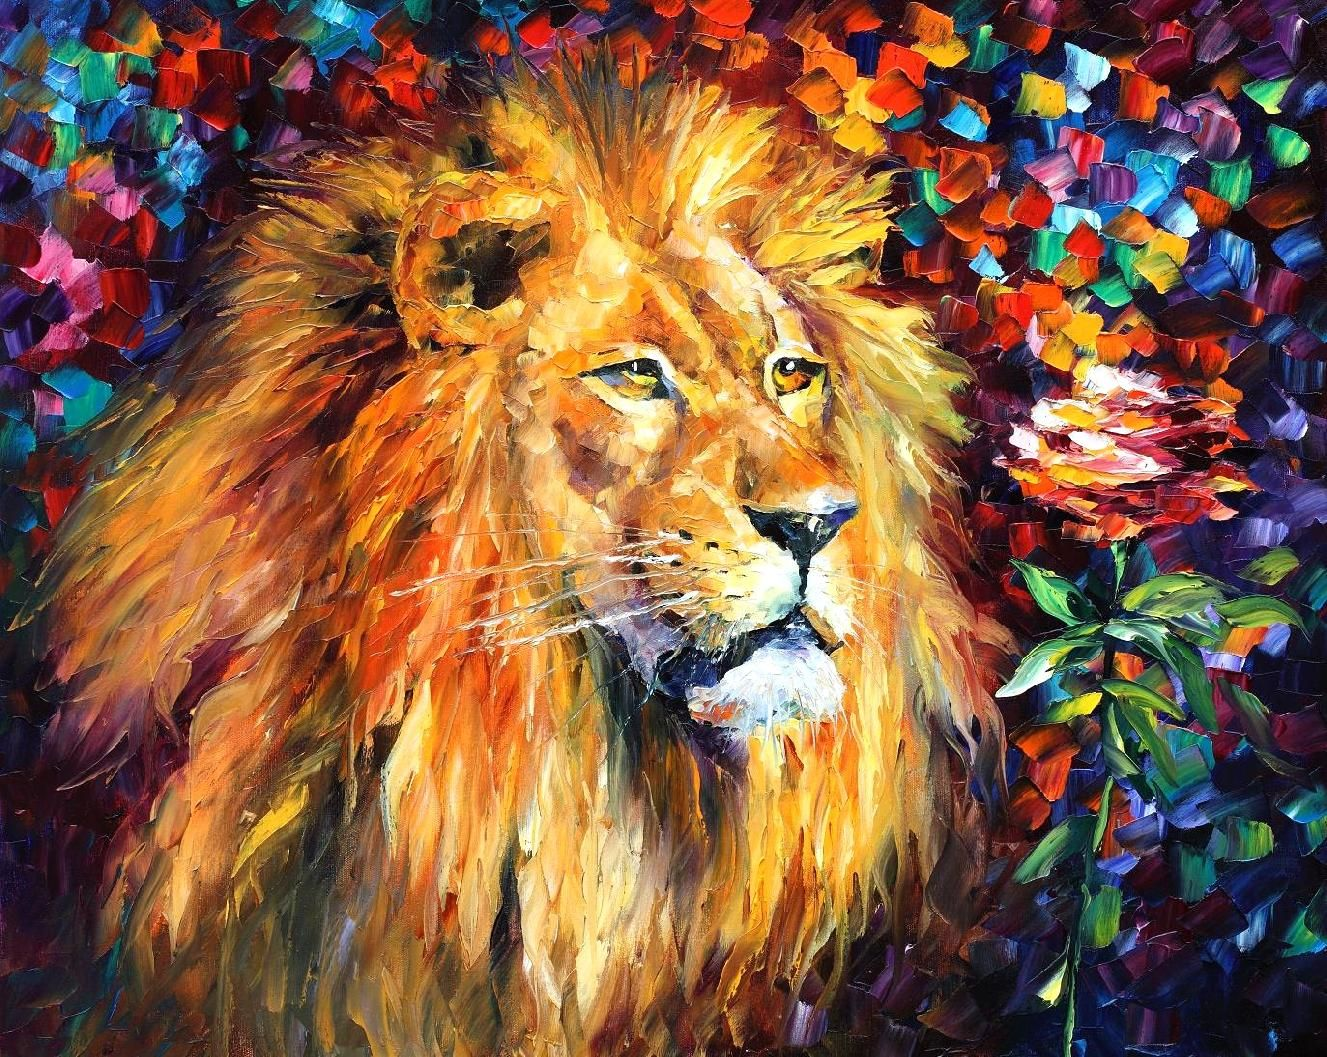 Canvas Painting Lion Of Zion Limited Edition Mixed Media Giclee On Canvas By